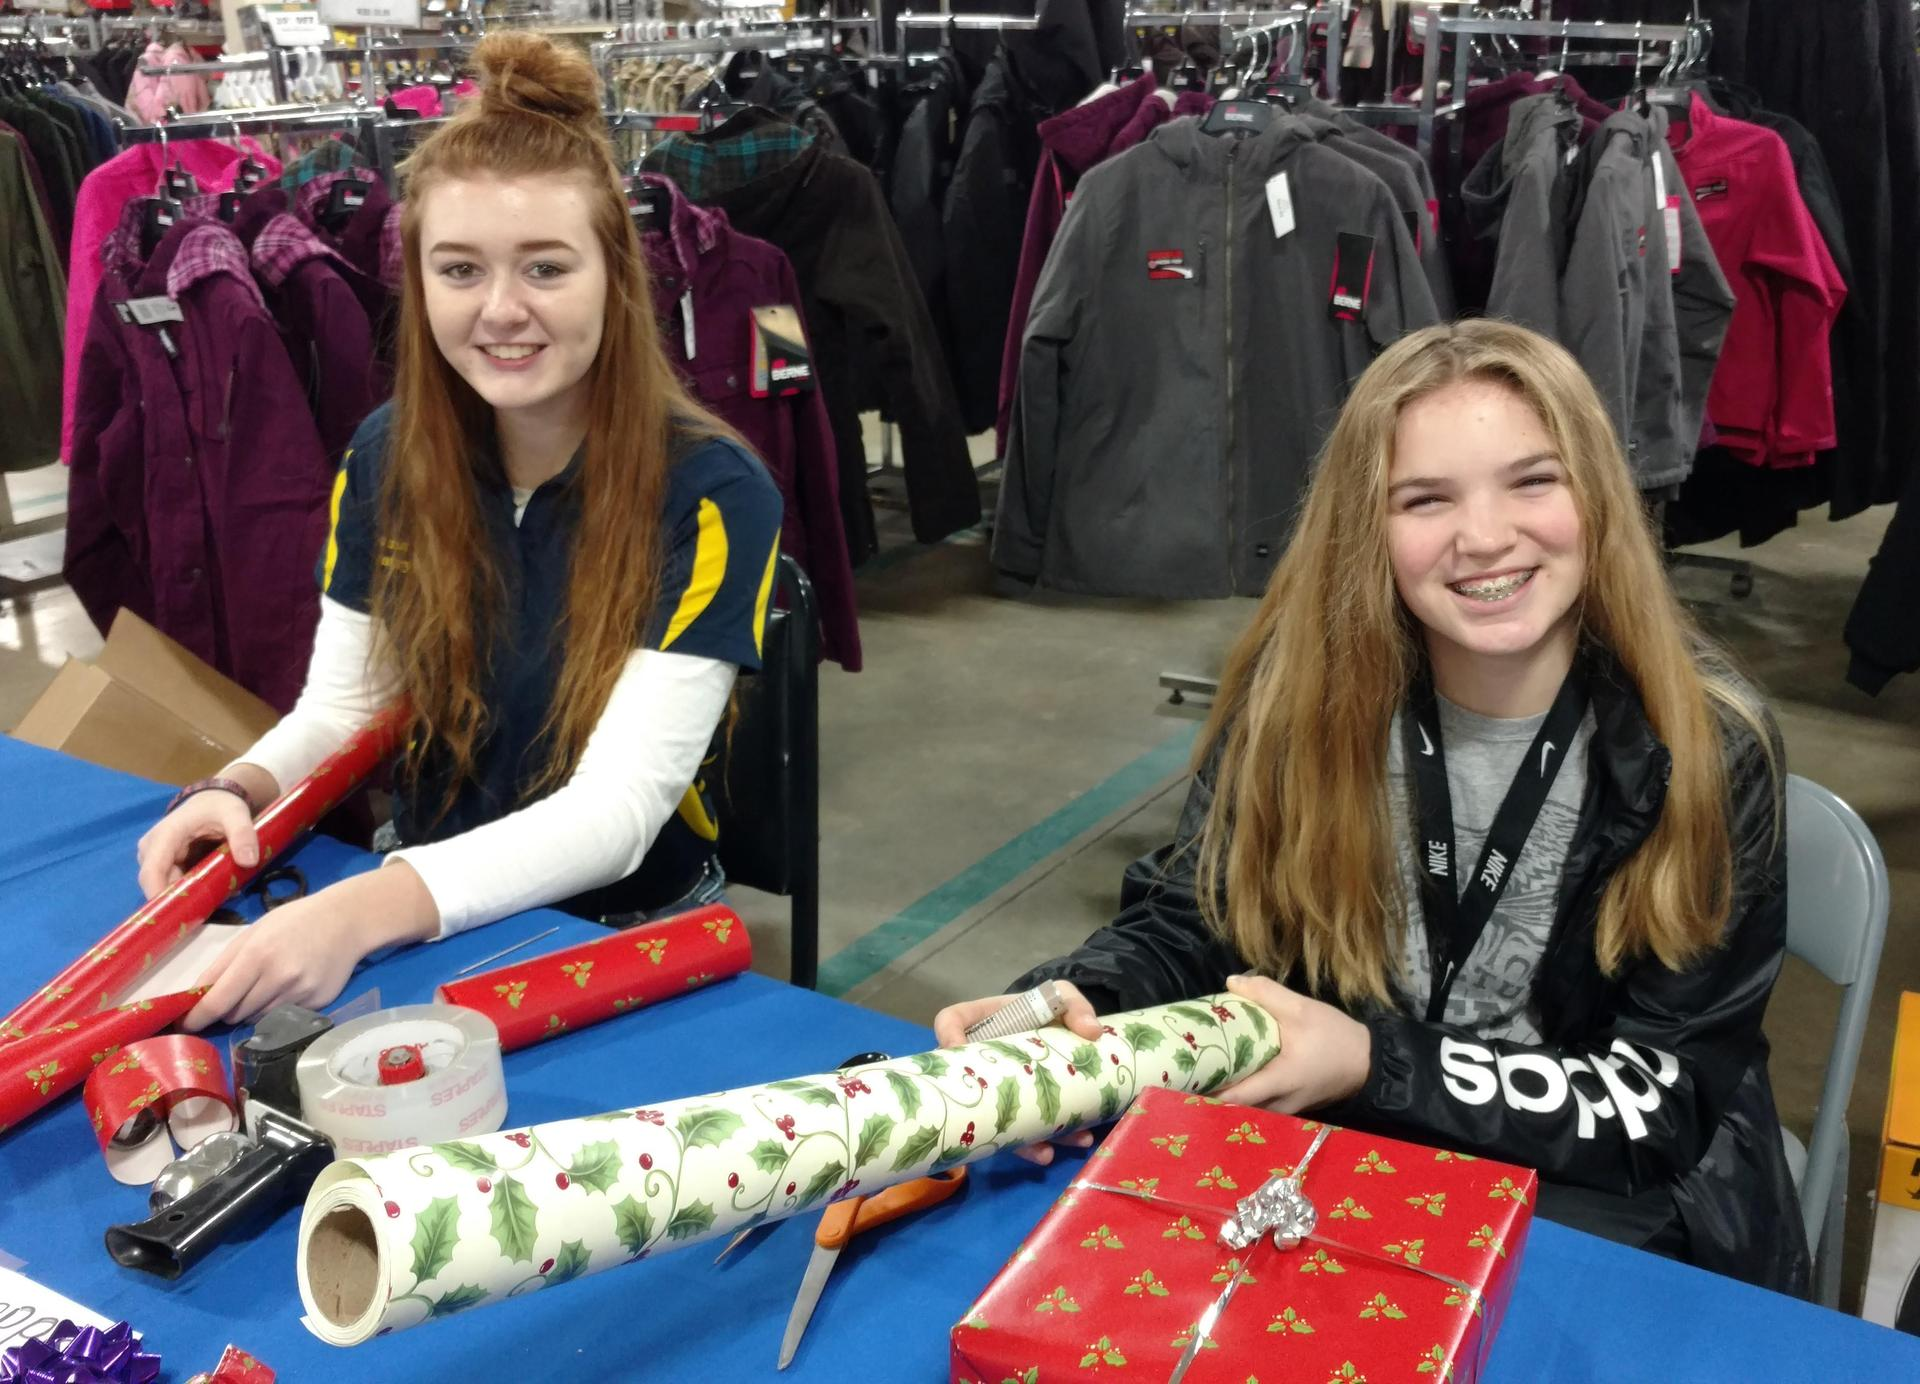 FFA wrapping presents at Family Farm Home